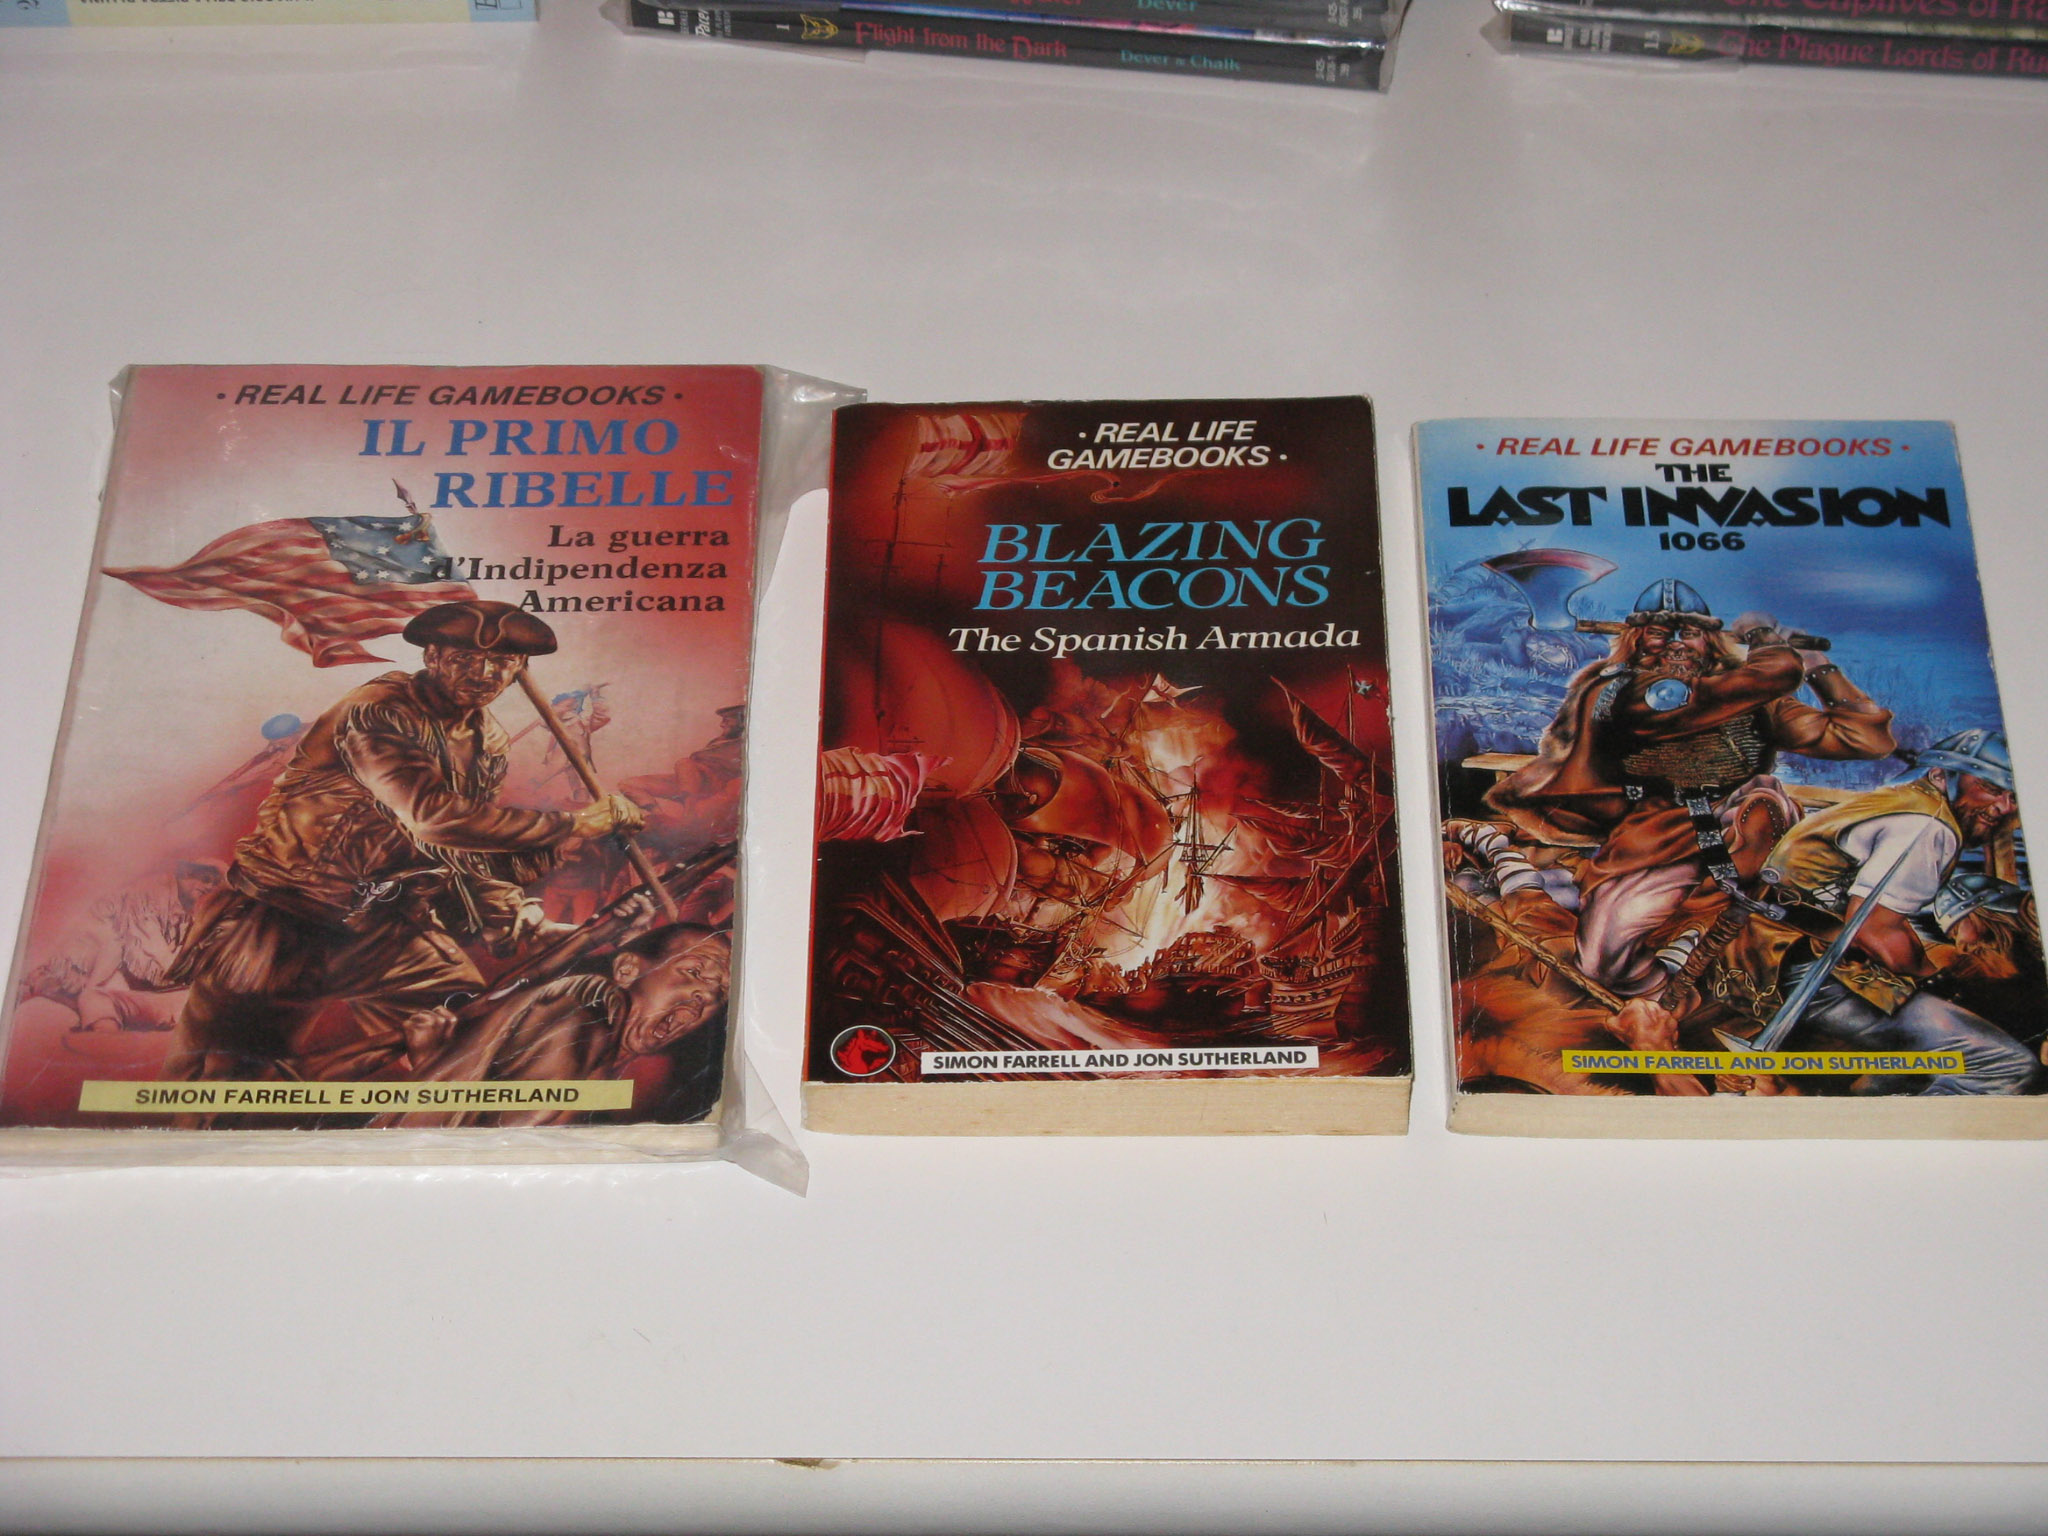 Real Life Gamebooks